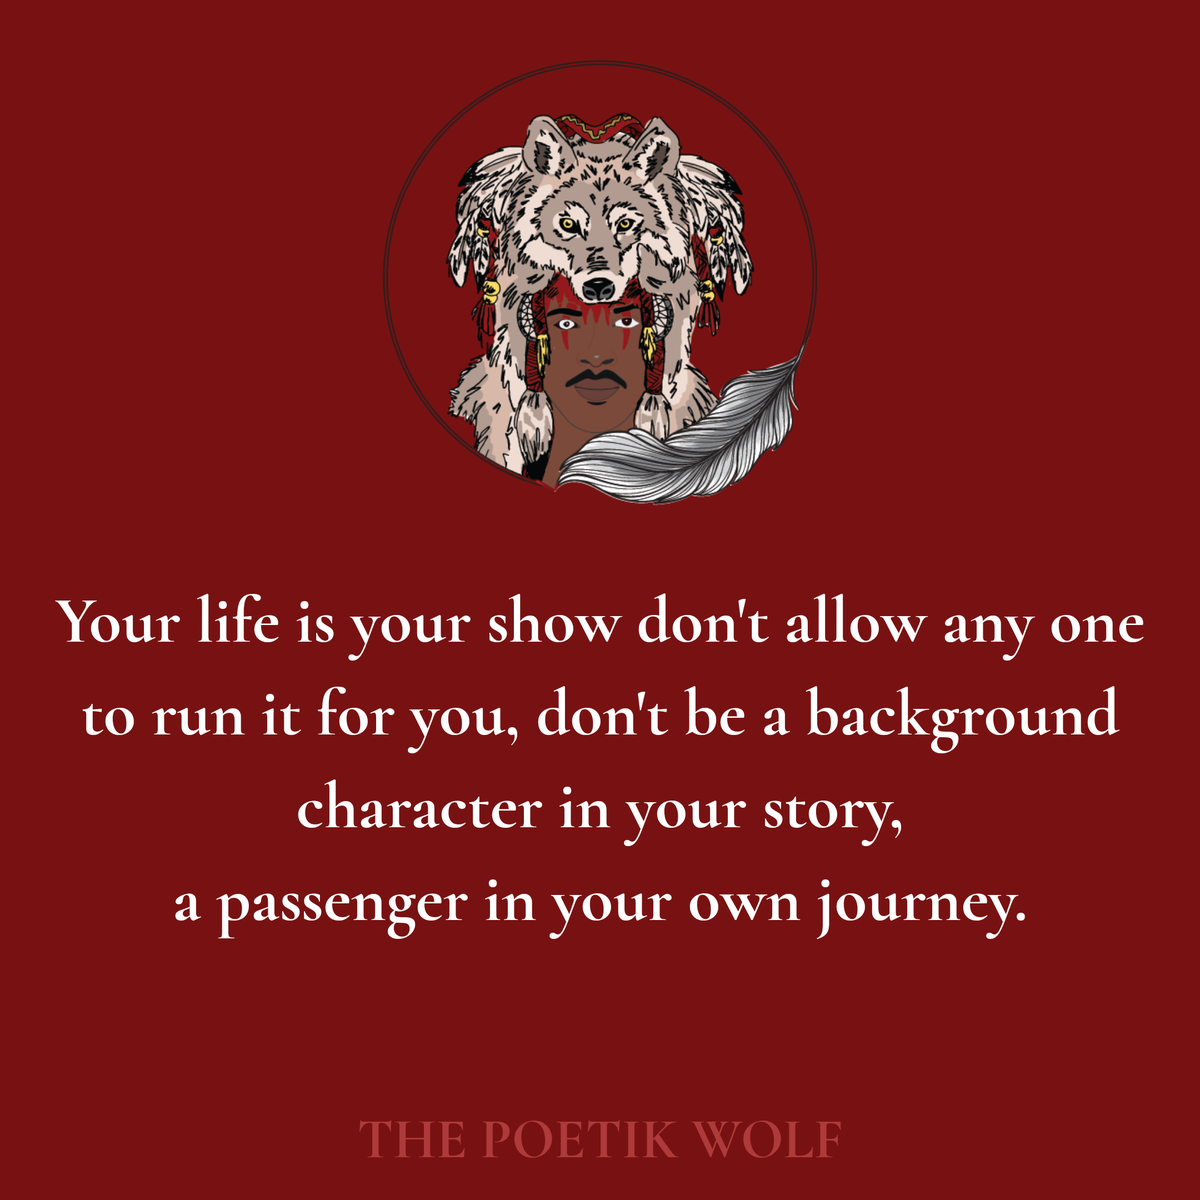 Take control of your life  Your life is your show don't allow any one to run it for you, don't be a background character in your story,  a passenger in your own journey.  #life #story #beyou #lead #poetry #lifequotes #lifestyle  #poem #lovequotes #poetikwolf https://t.co/vPTm9k5LdO